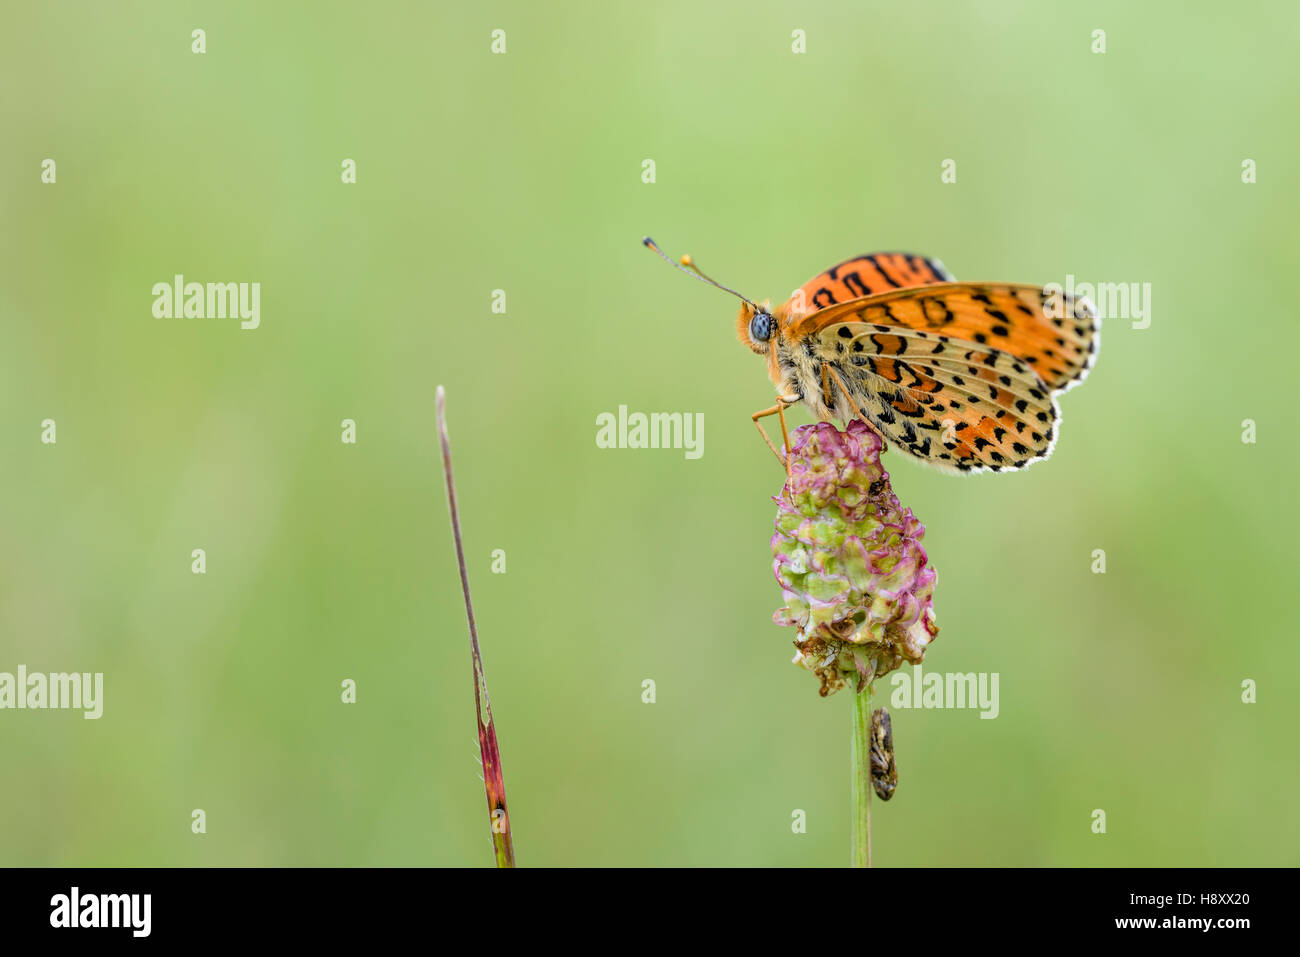 Roter Scheckenfalter, Melitaea didyma, The spotted fritillary or red-band fritillary - Stock Image